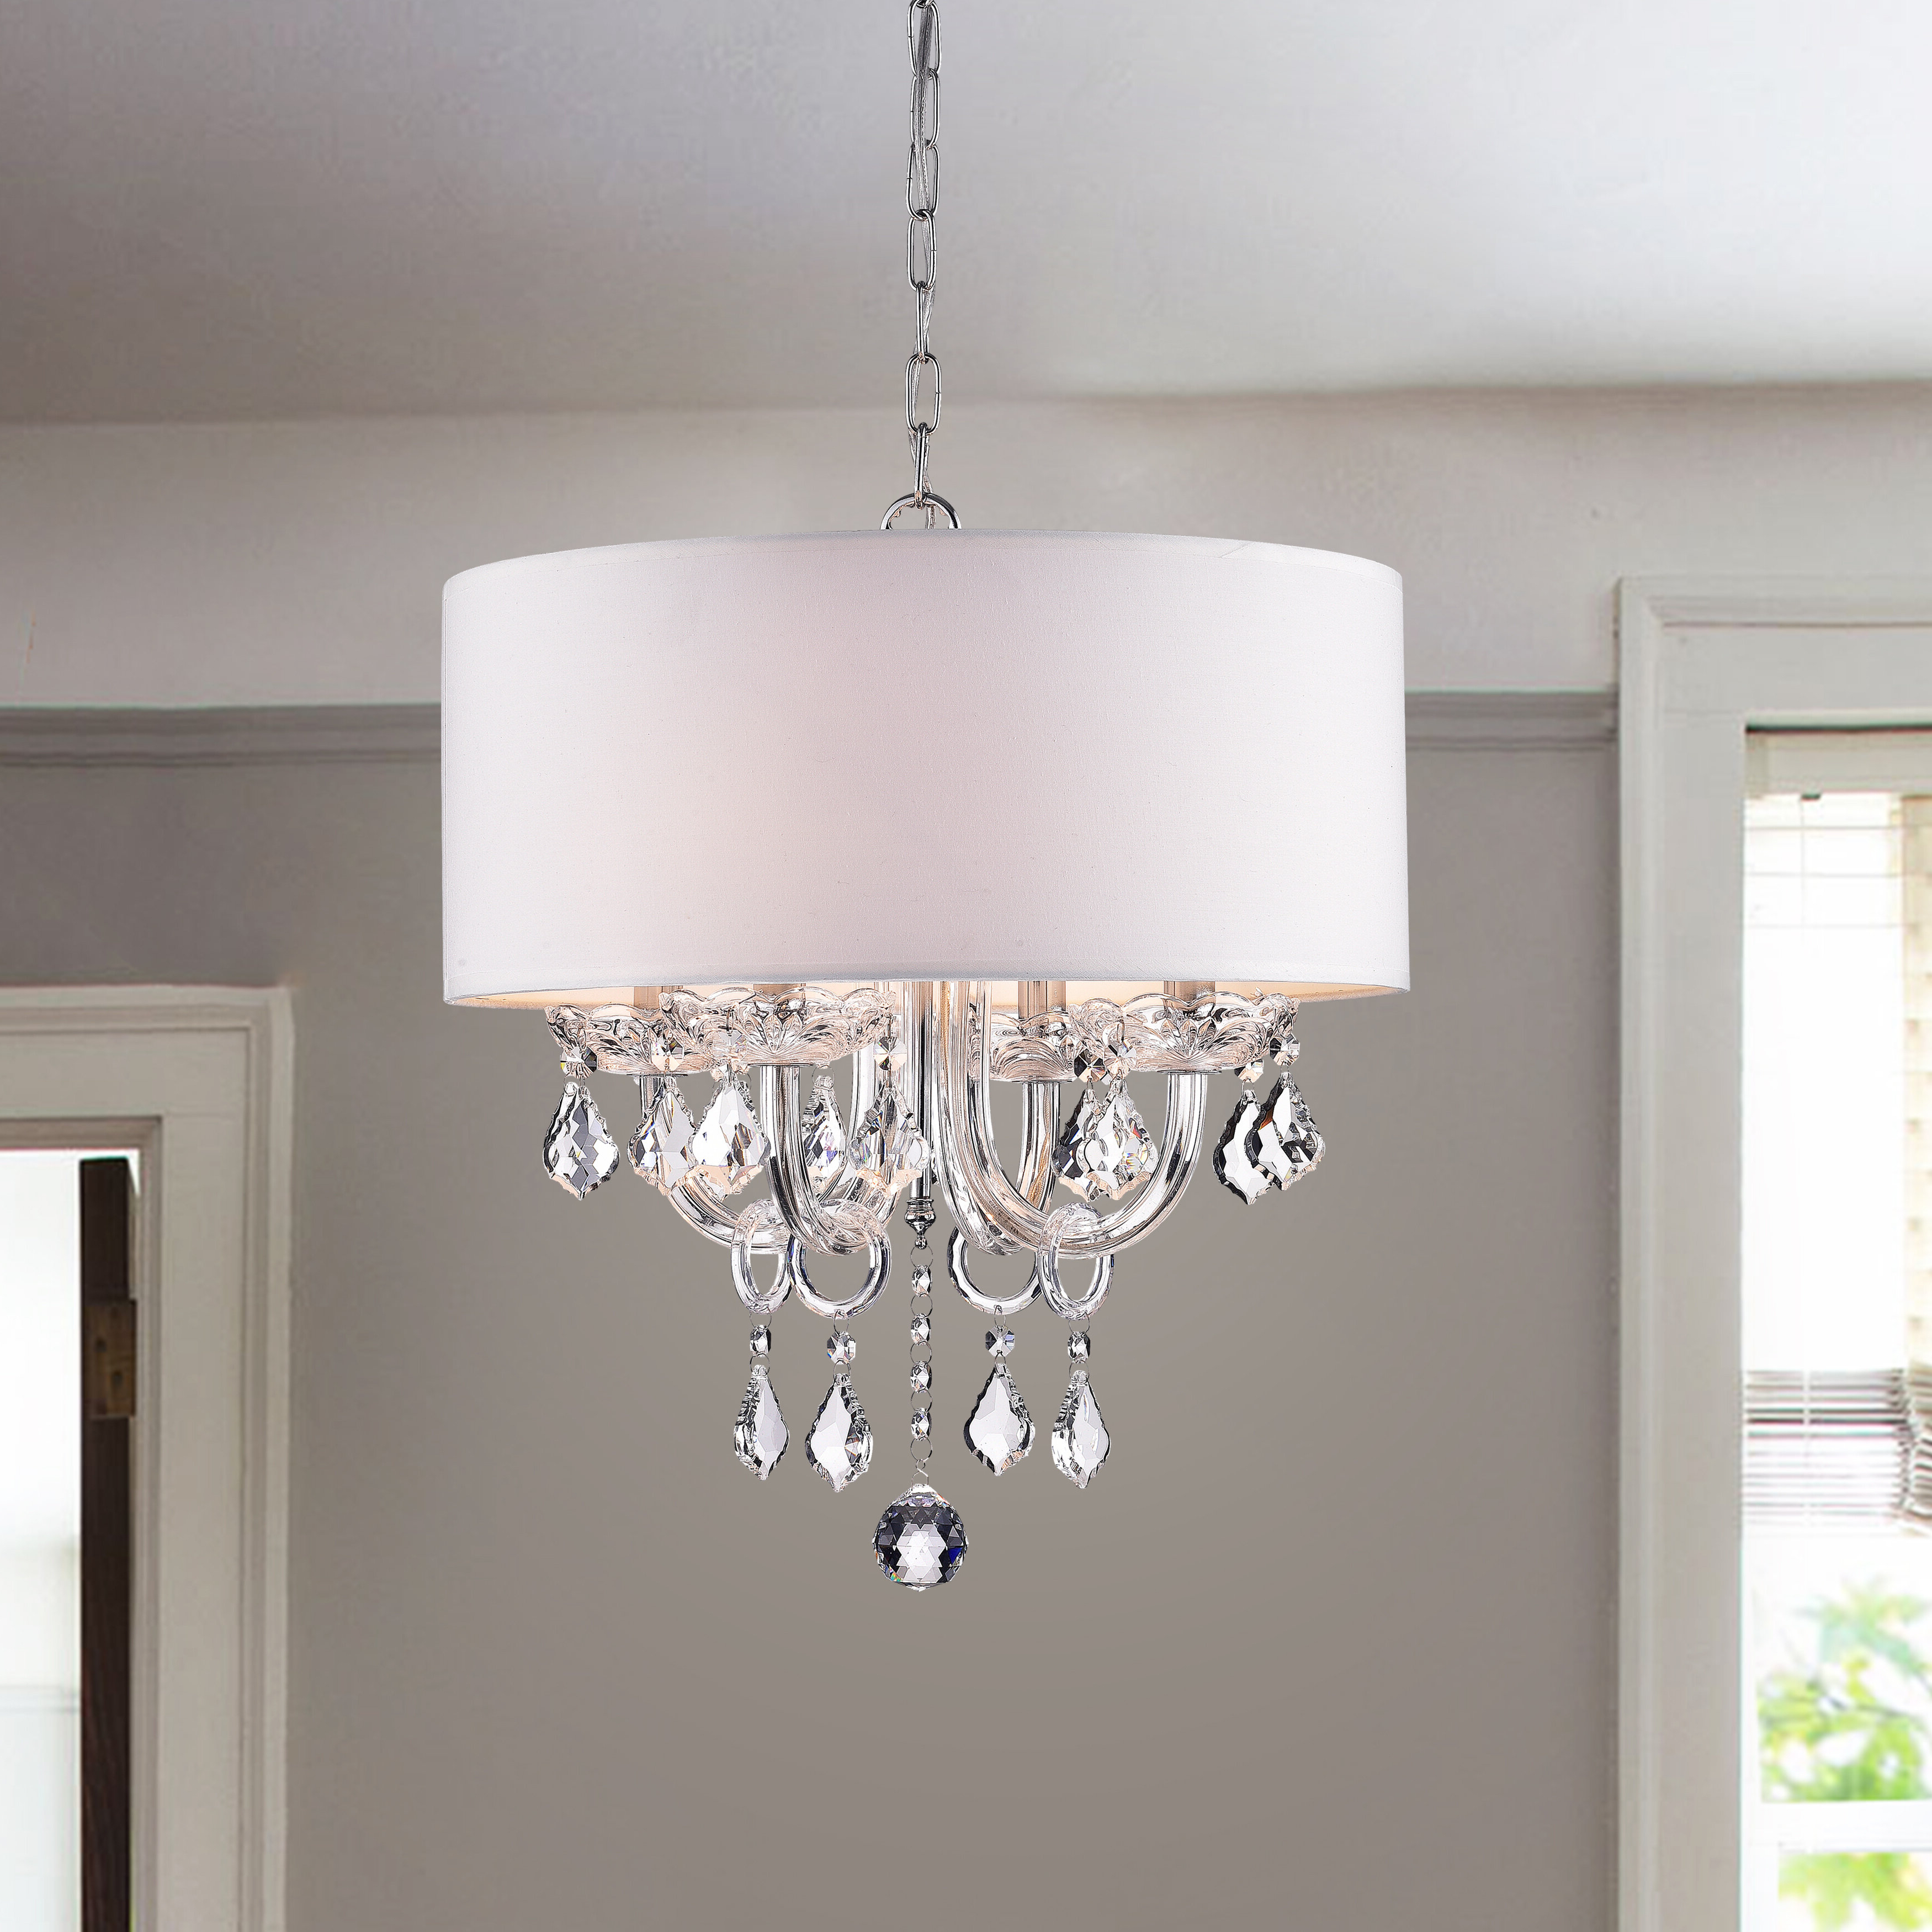 Dunaghy 4 Light Chandelier Regarding 2019 Gisselle 4 Light Drum Chandeliers (Gallery 17 of 25)